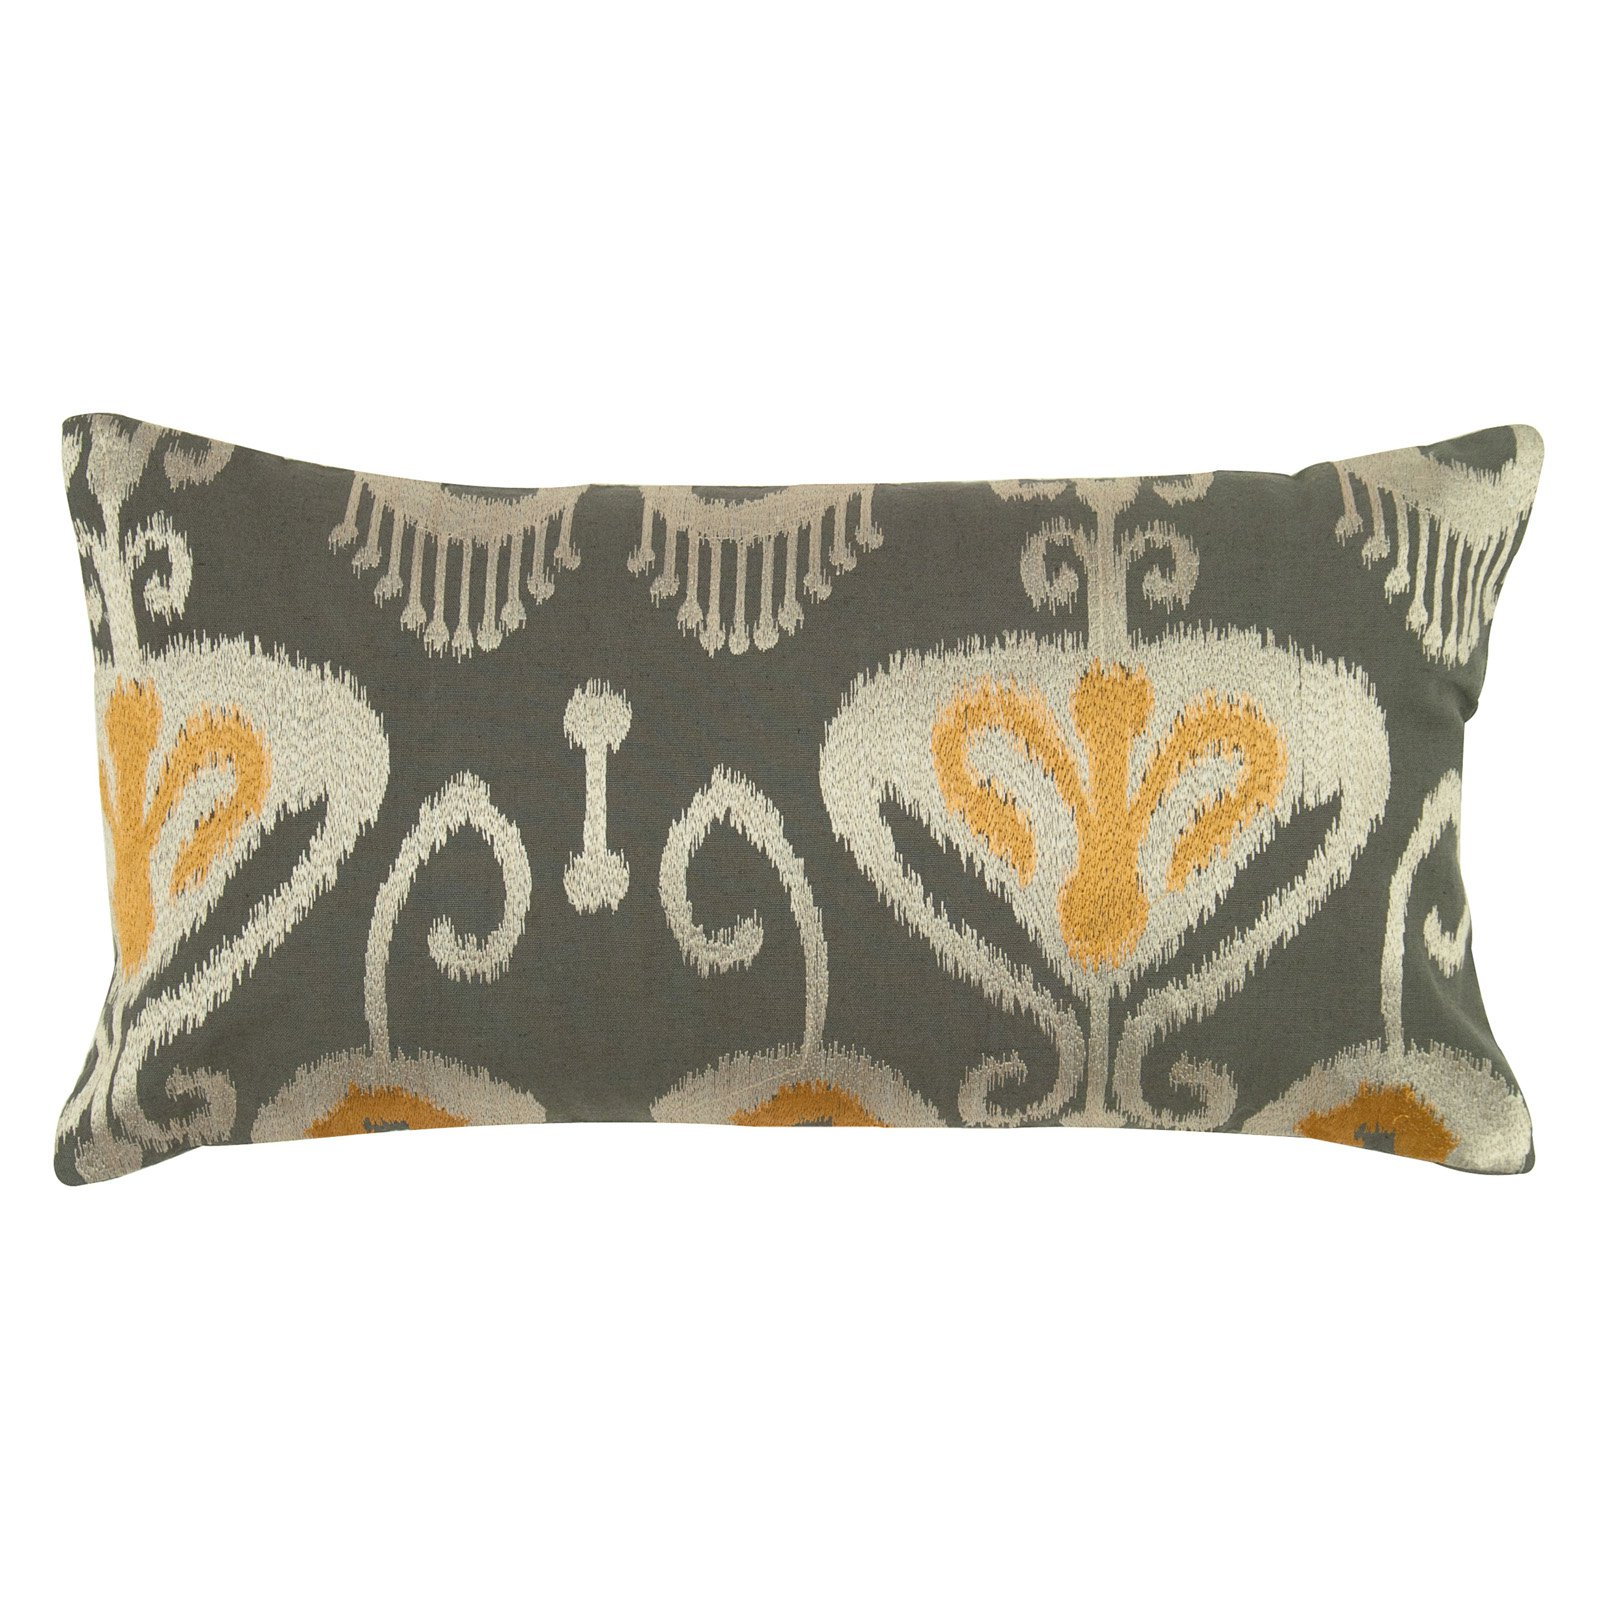 """Rizzy Home ikat  with flourishes11"""" x 21""""Cotton decorative filled pillow"""